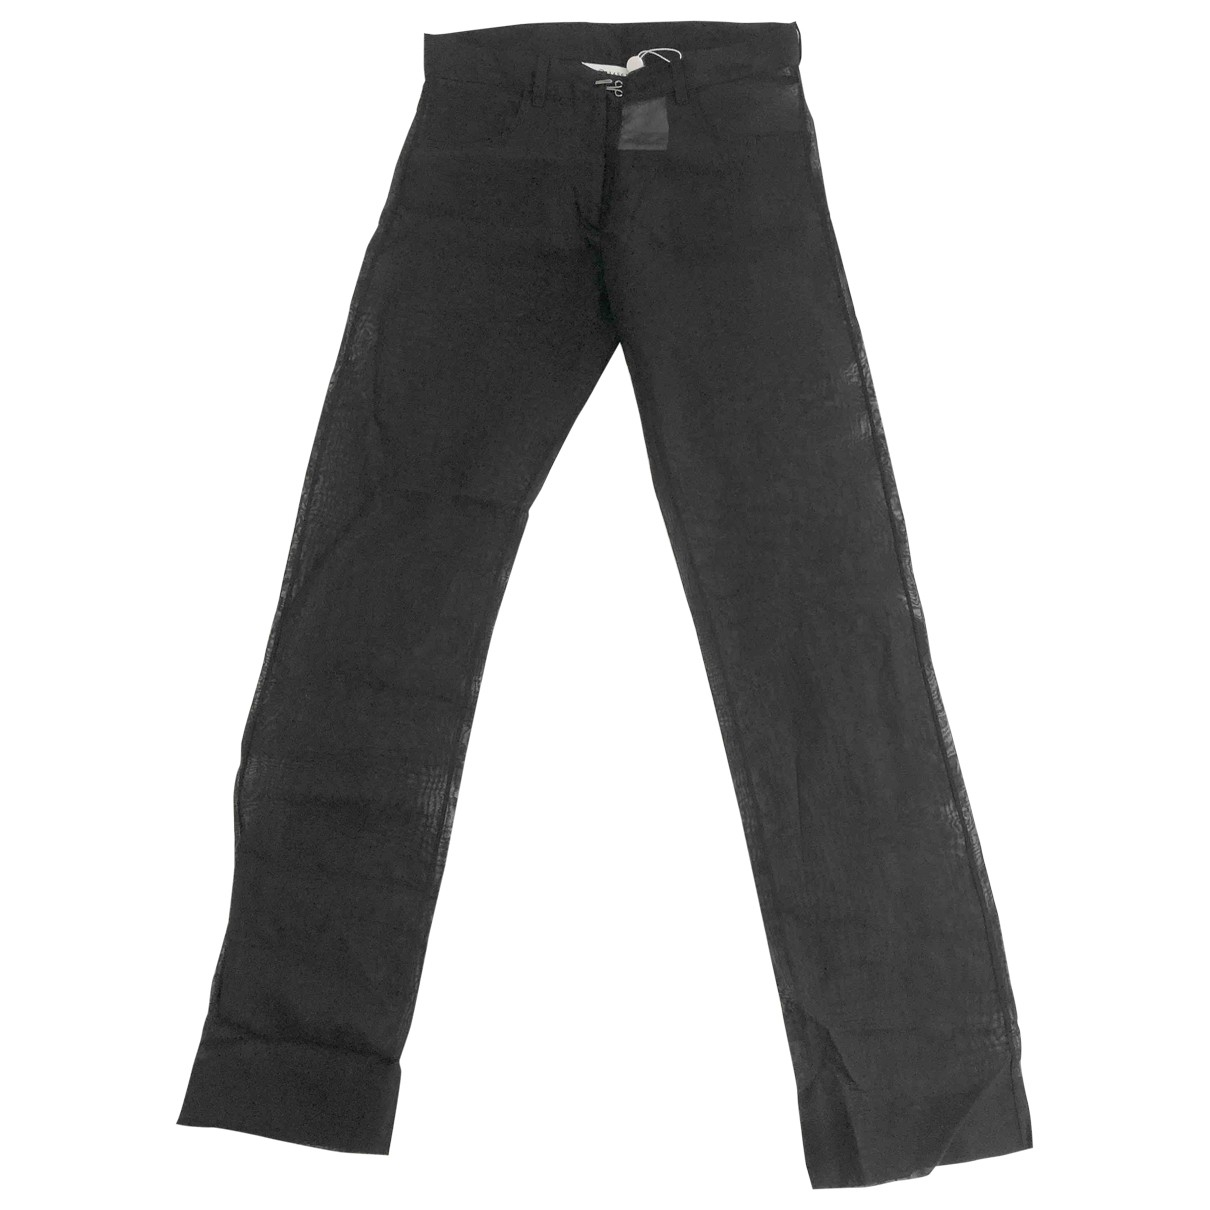 Maison Martin Margiela \N Black Cotton Trousers for Women M International